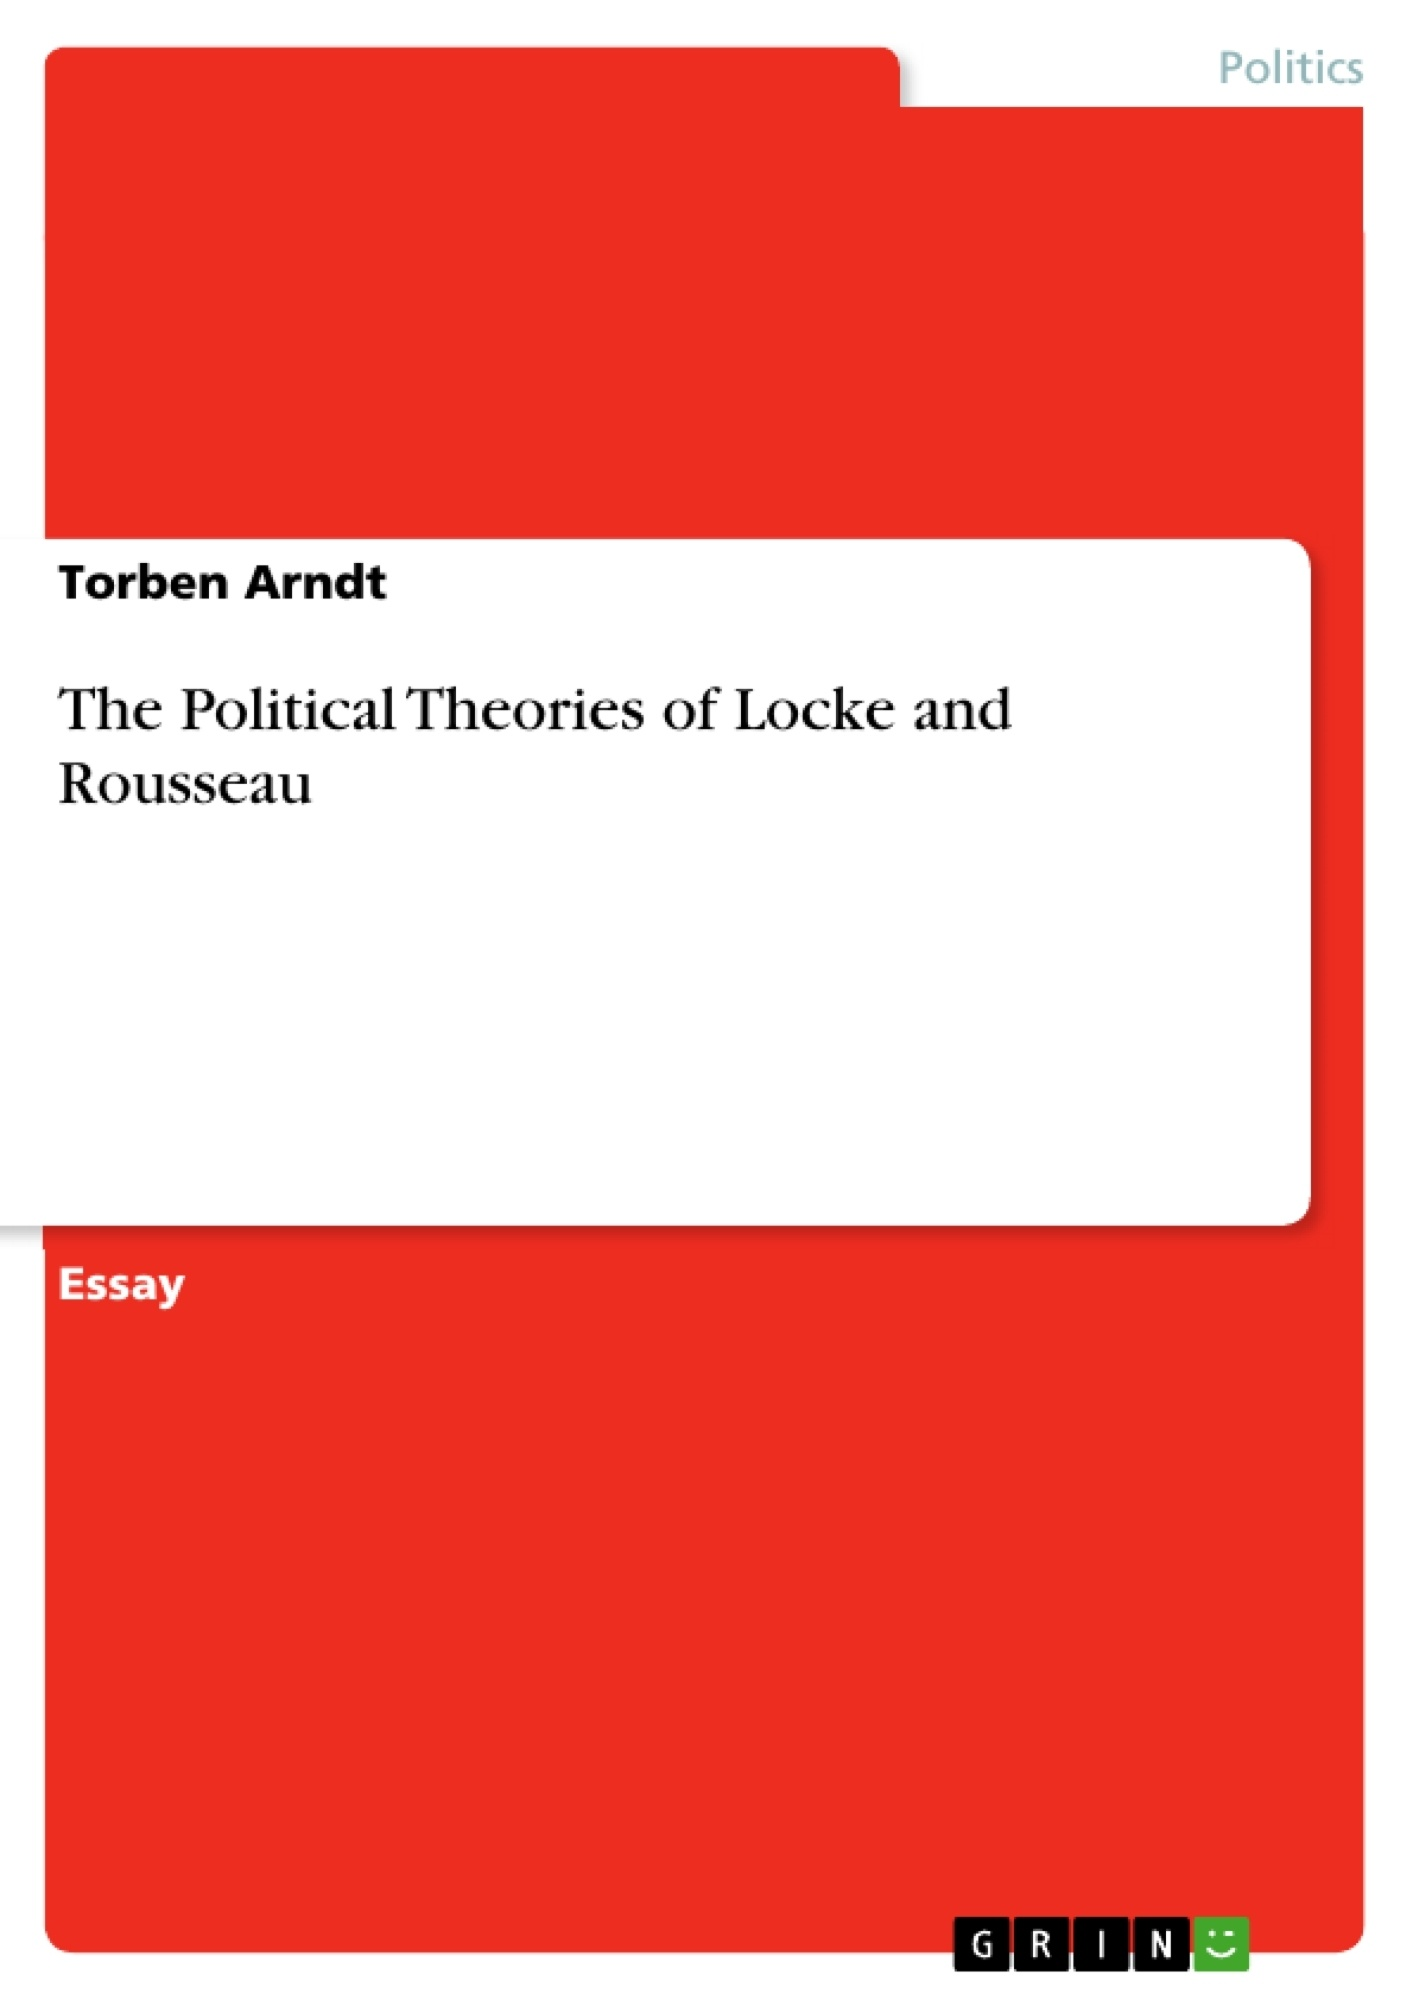 Title: The Political Theories of Locke and Rousseau